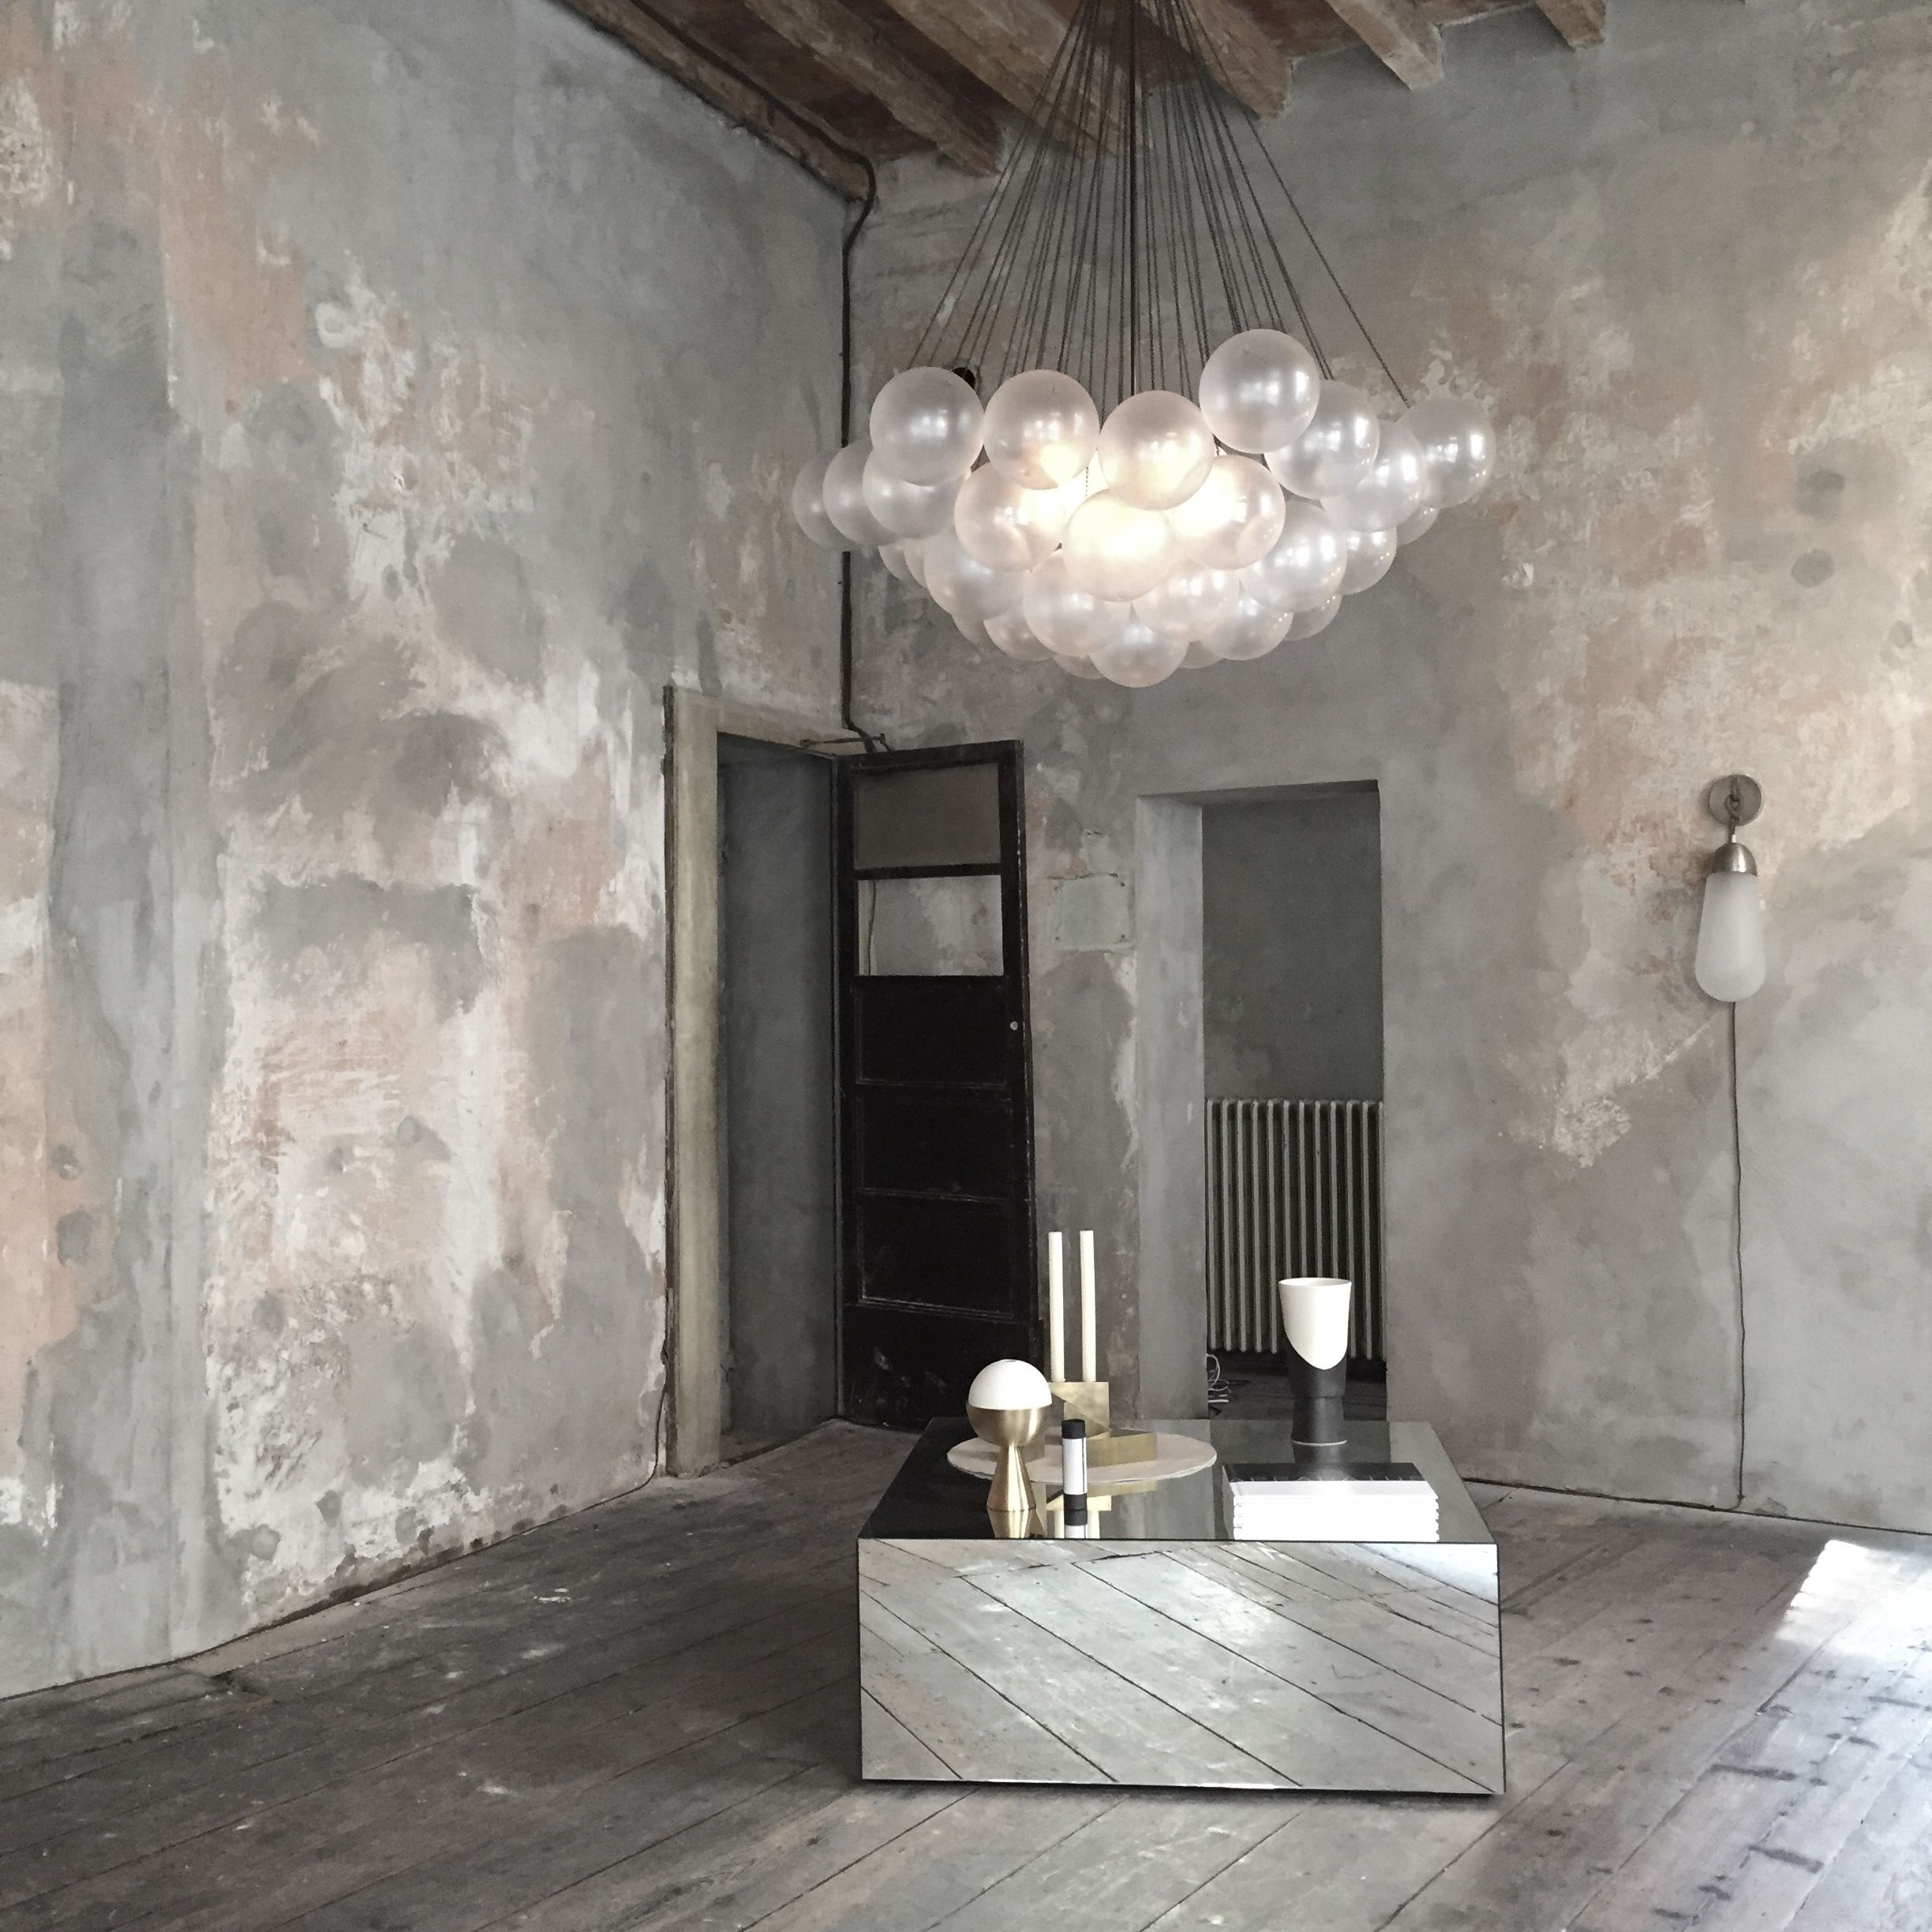 Interior Design Lighting Ideas Jaw Dropping Stunning: Pin By Yatzer On Jaw Dropping Interiors & Exteriors